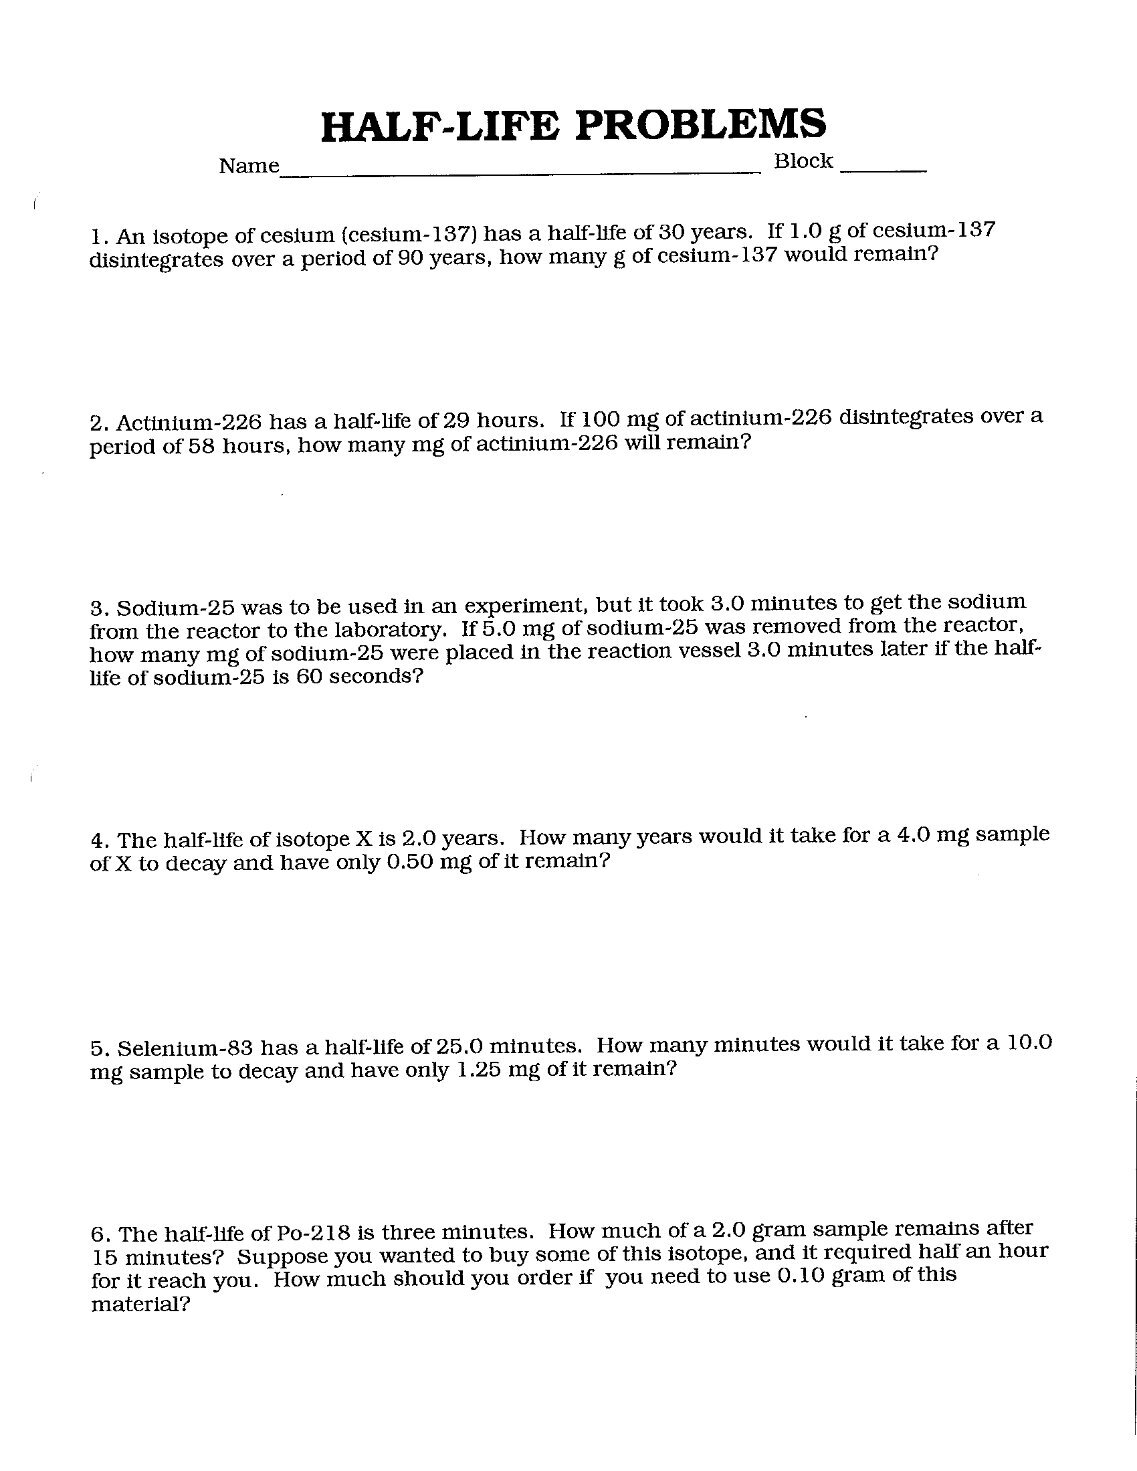 Worksheets Half Life Calculations Worksheet 1 free magazines from mrsbridgessciencepage wikispaces com com